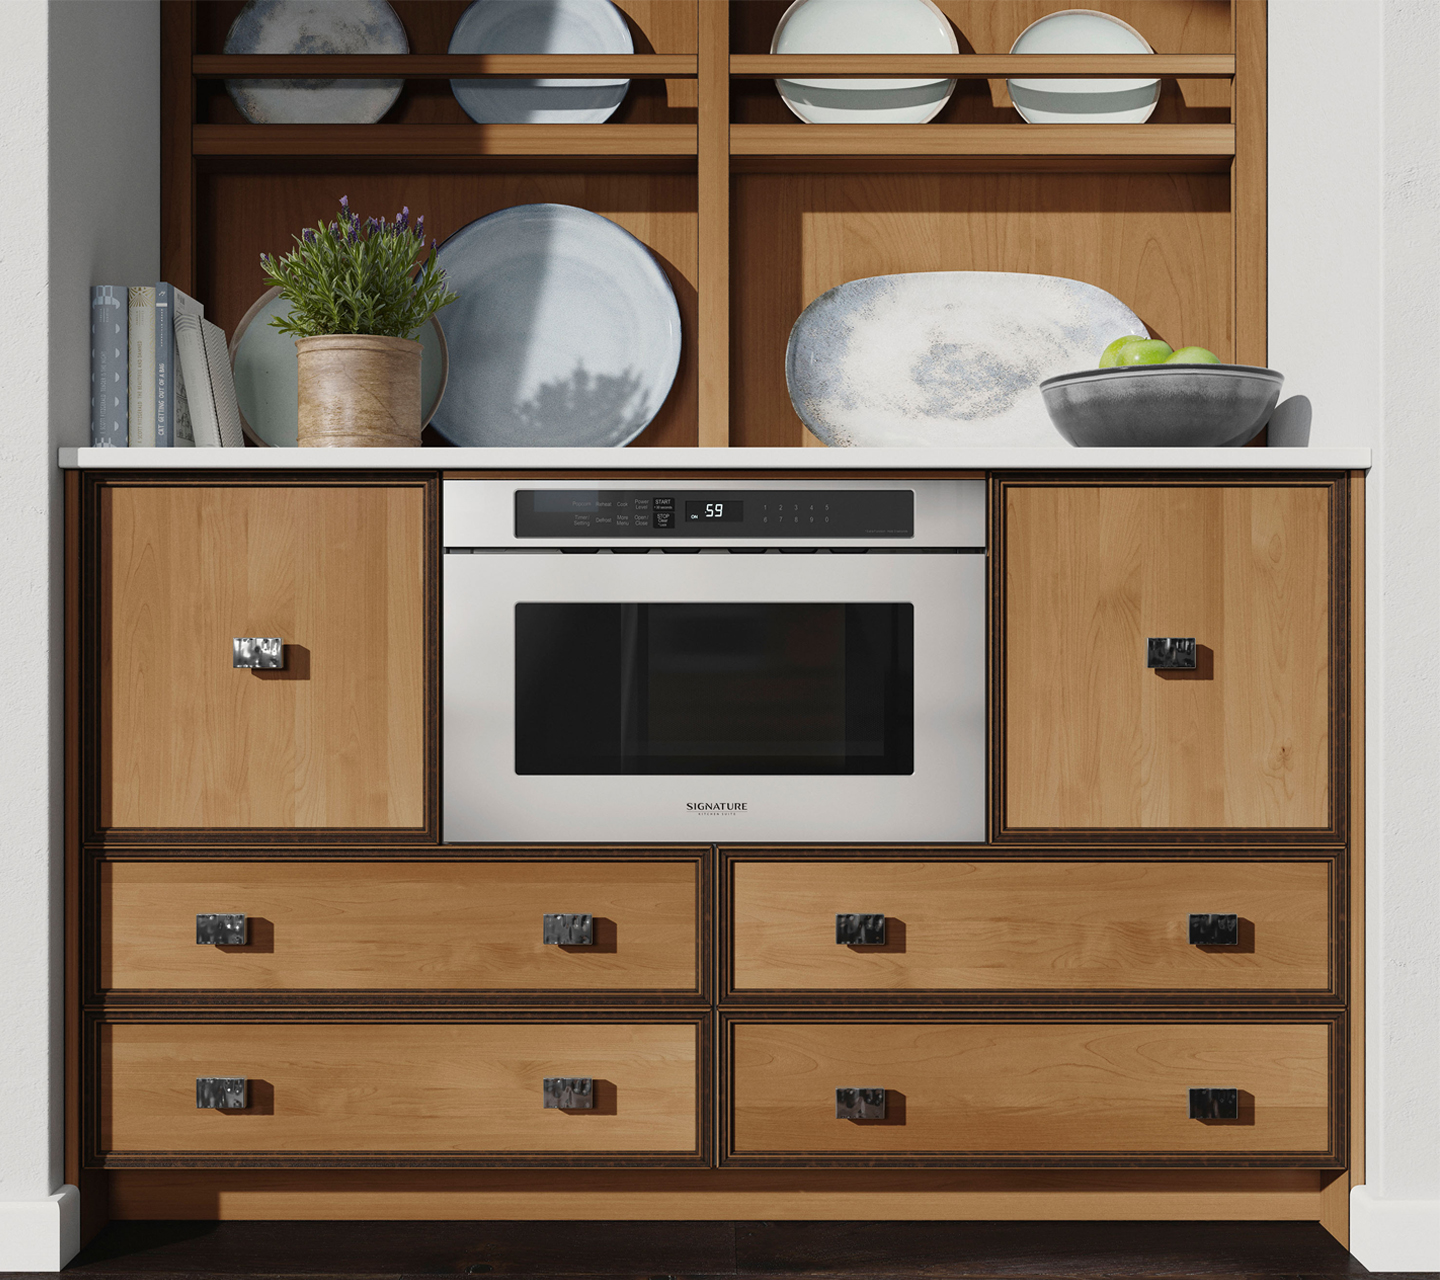 Signature Kitchen Suite Microwave Oven Drawer